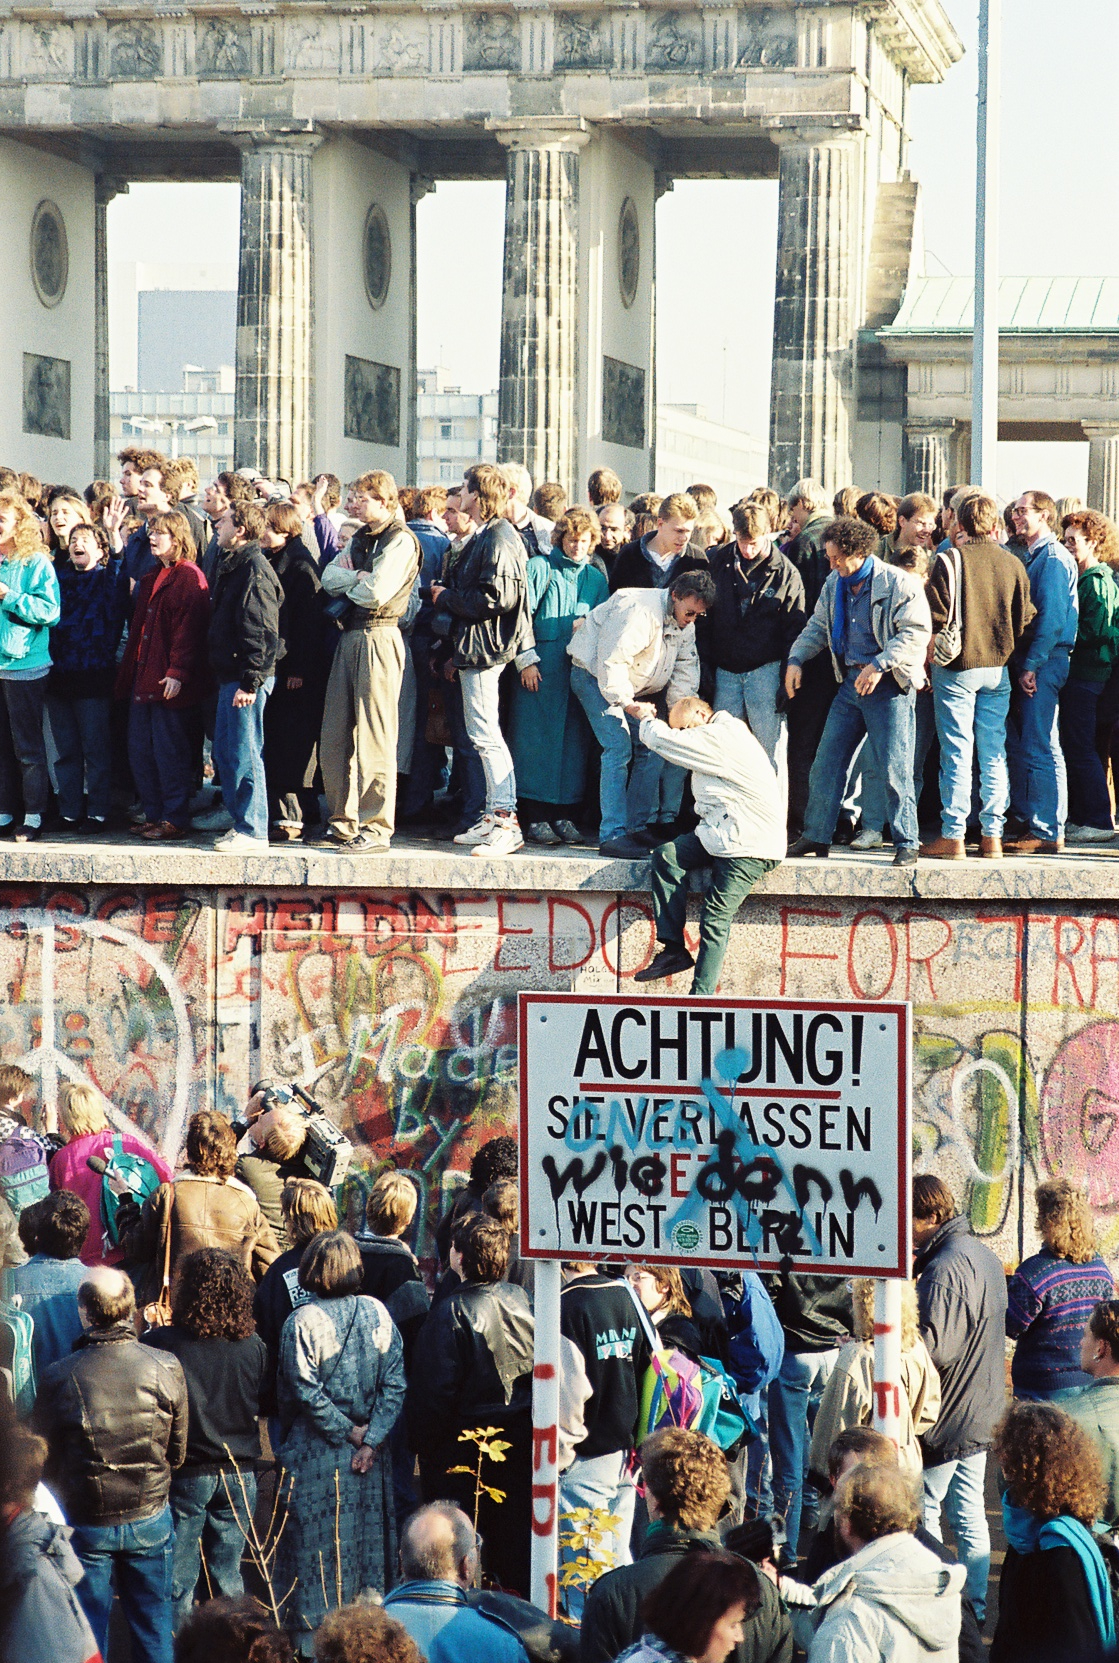 http://upload.wikimedia.org/wikipedia/commons/2/25/BerlinWall-BrandenburgGate.jpg